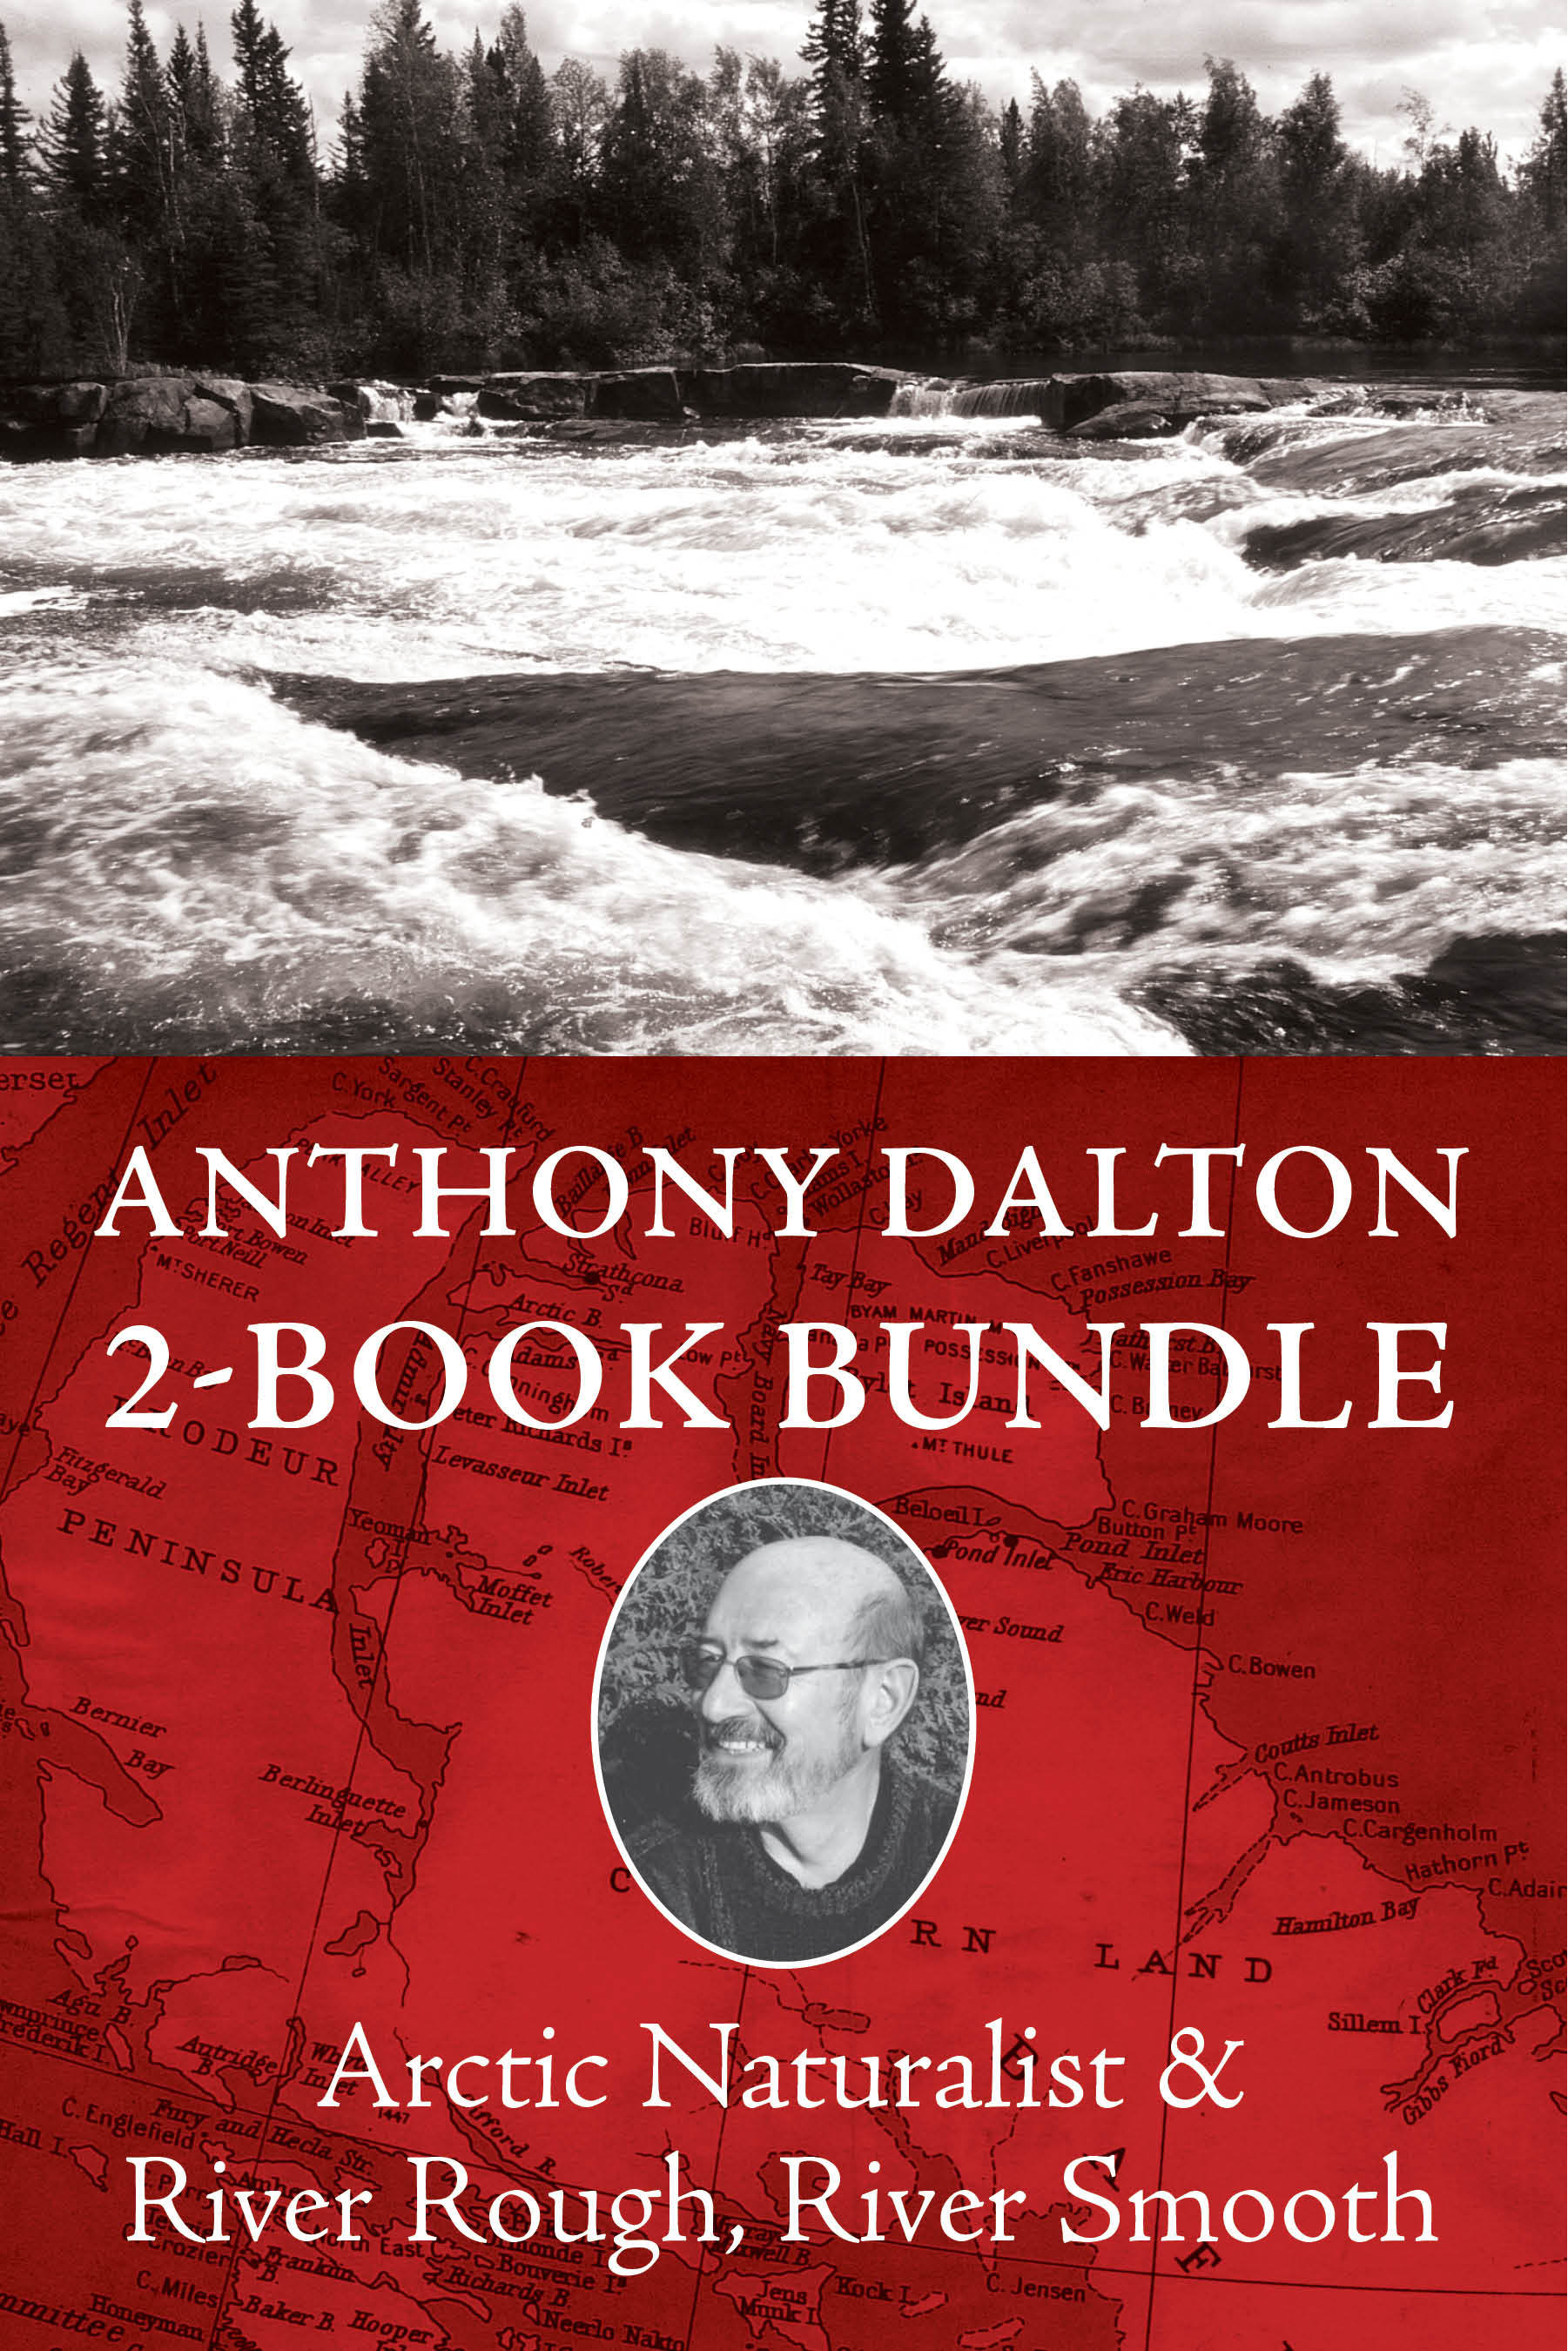 Anthony Dalton 2-Book Bundle: River Rough, River Smooth / Arctic Naturalist  by  Anthony Dalton